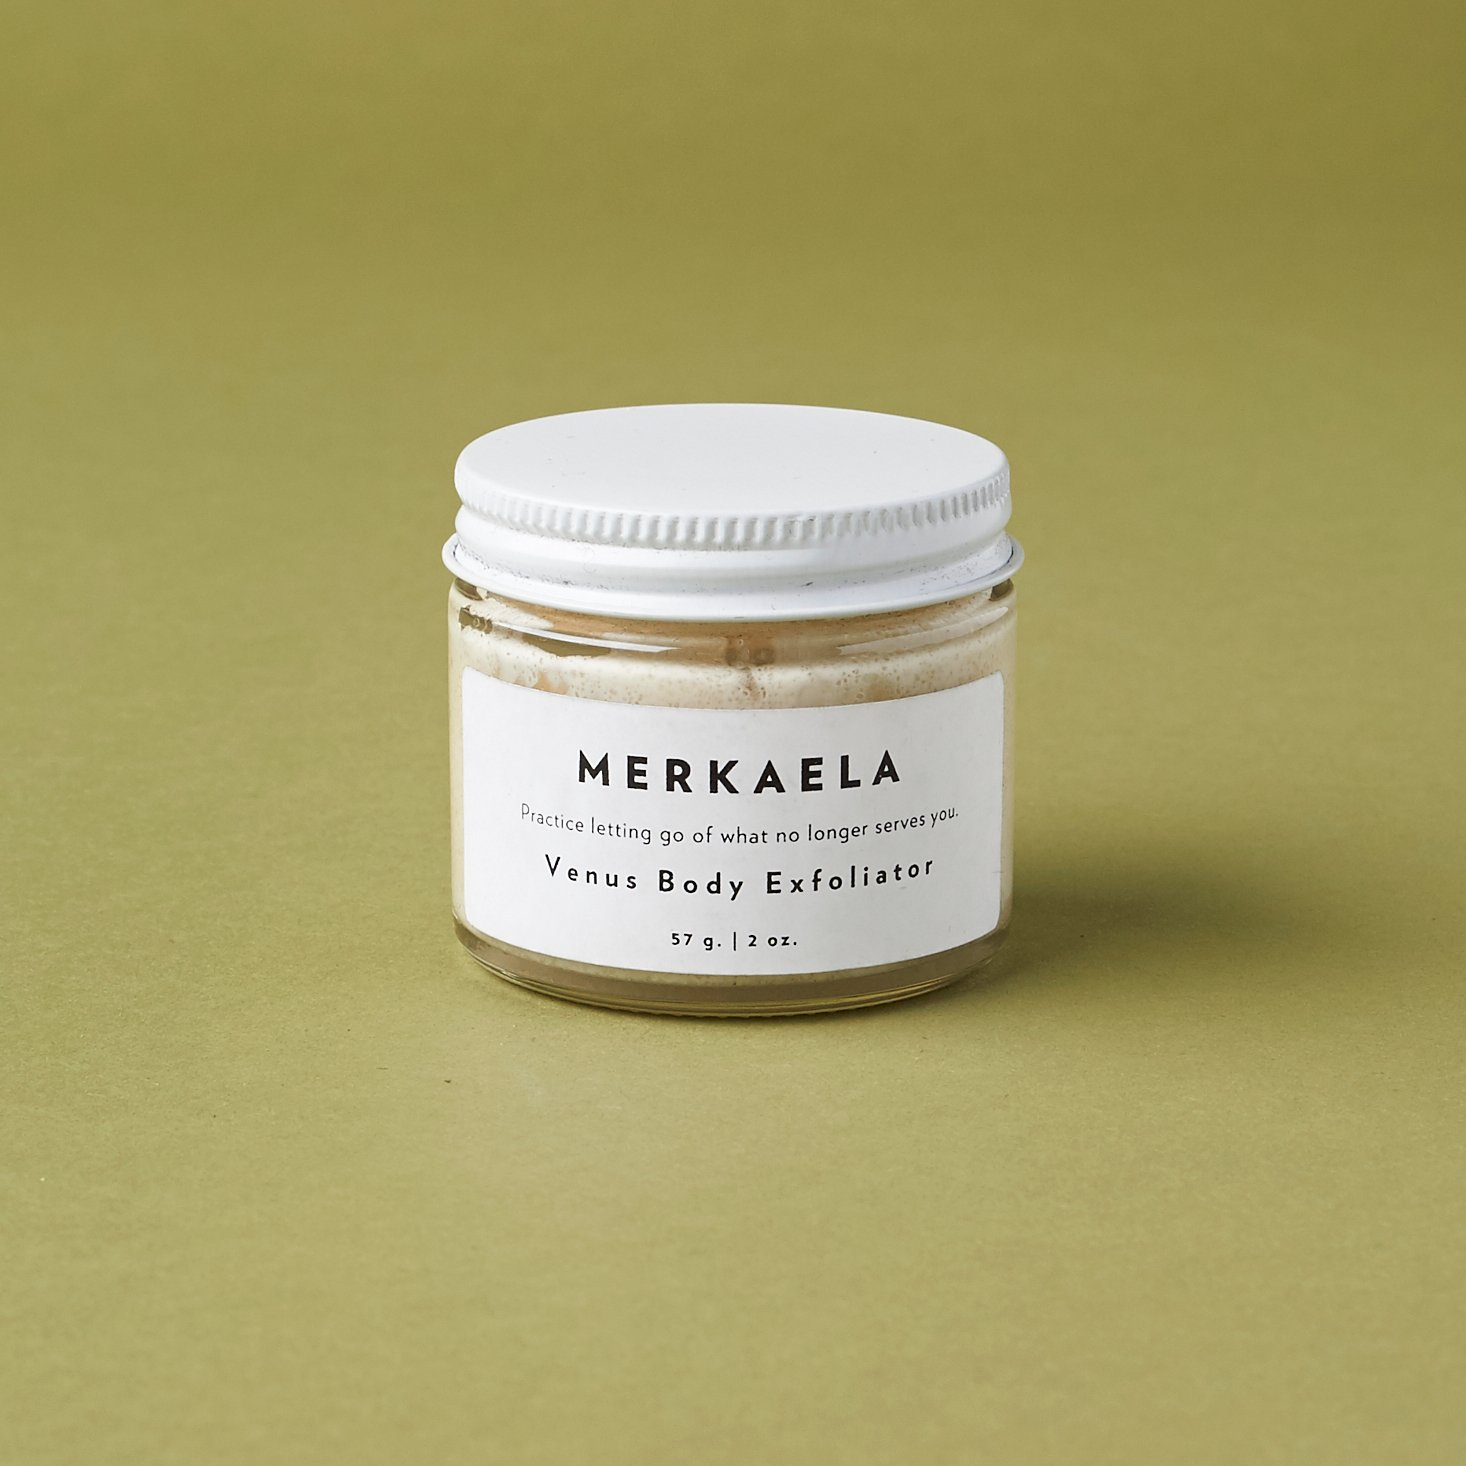 Check out our review of the Merkaela winter box!